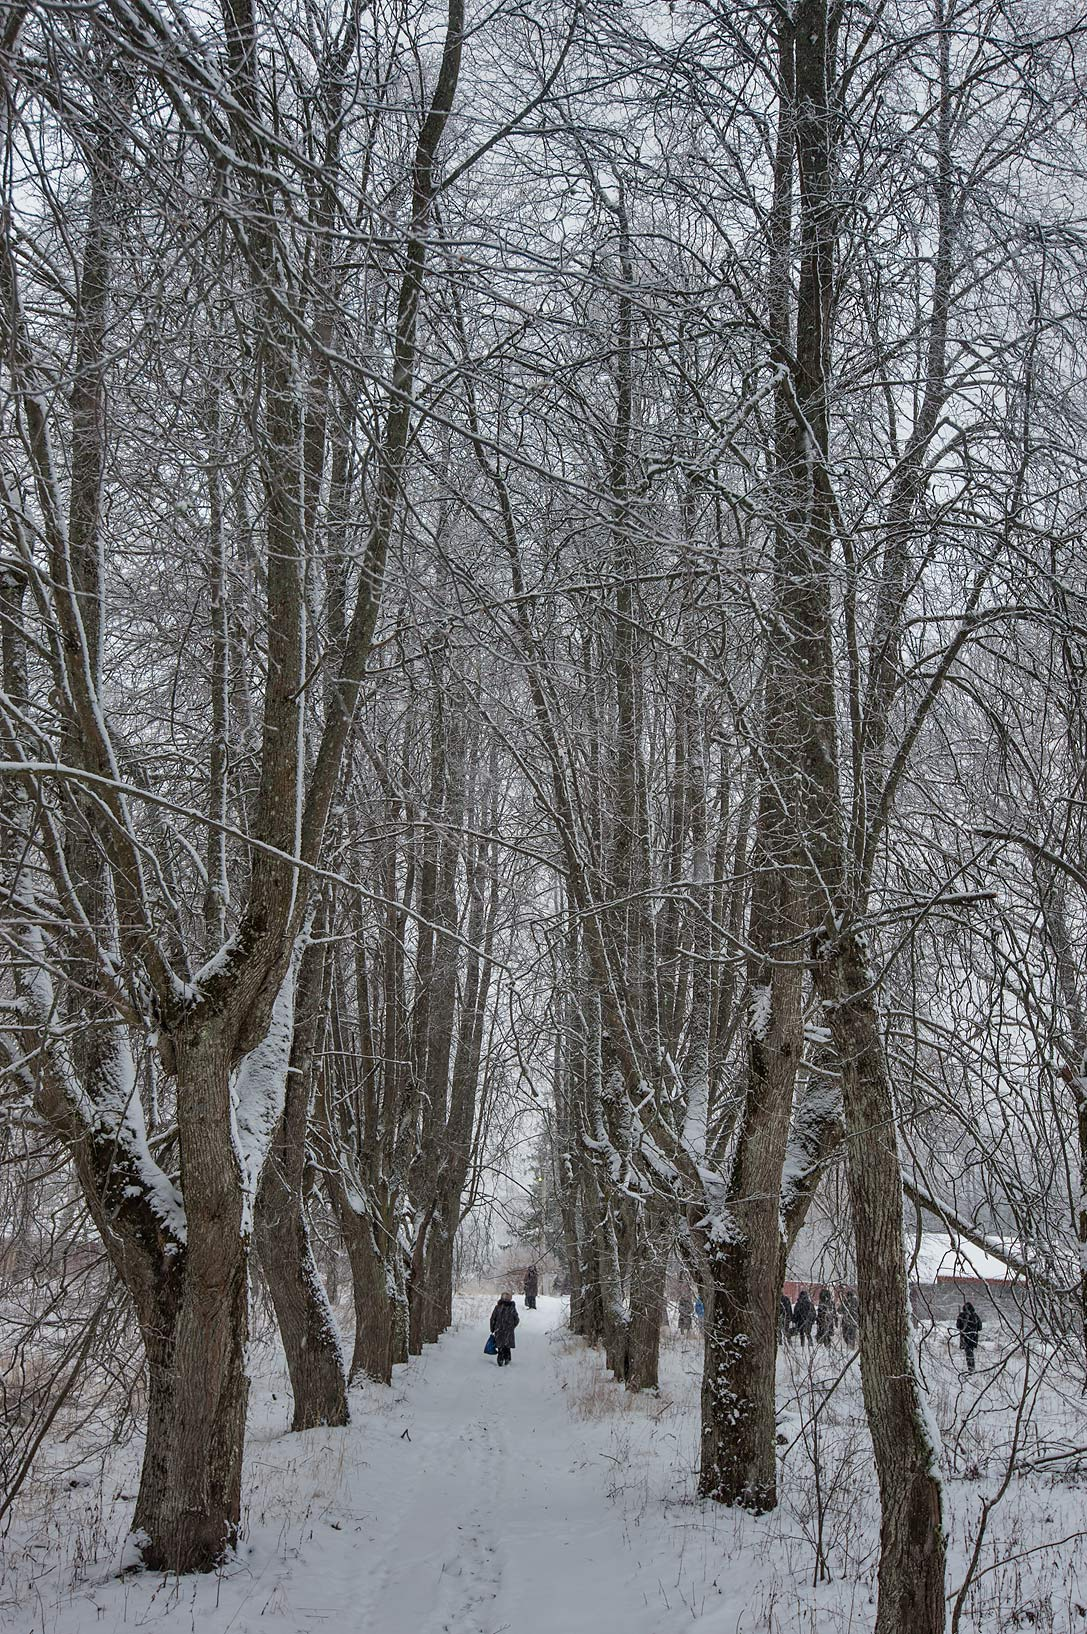 Linden alley in Voronino Estate. Lomonosov Region of Leningrad District, Russia